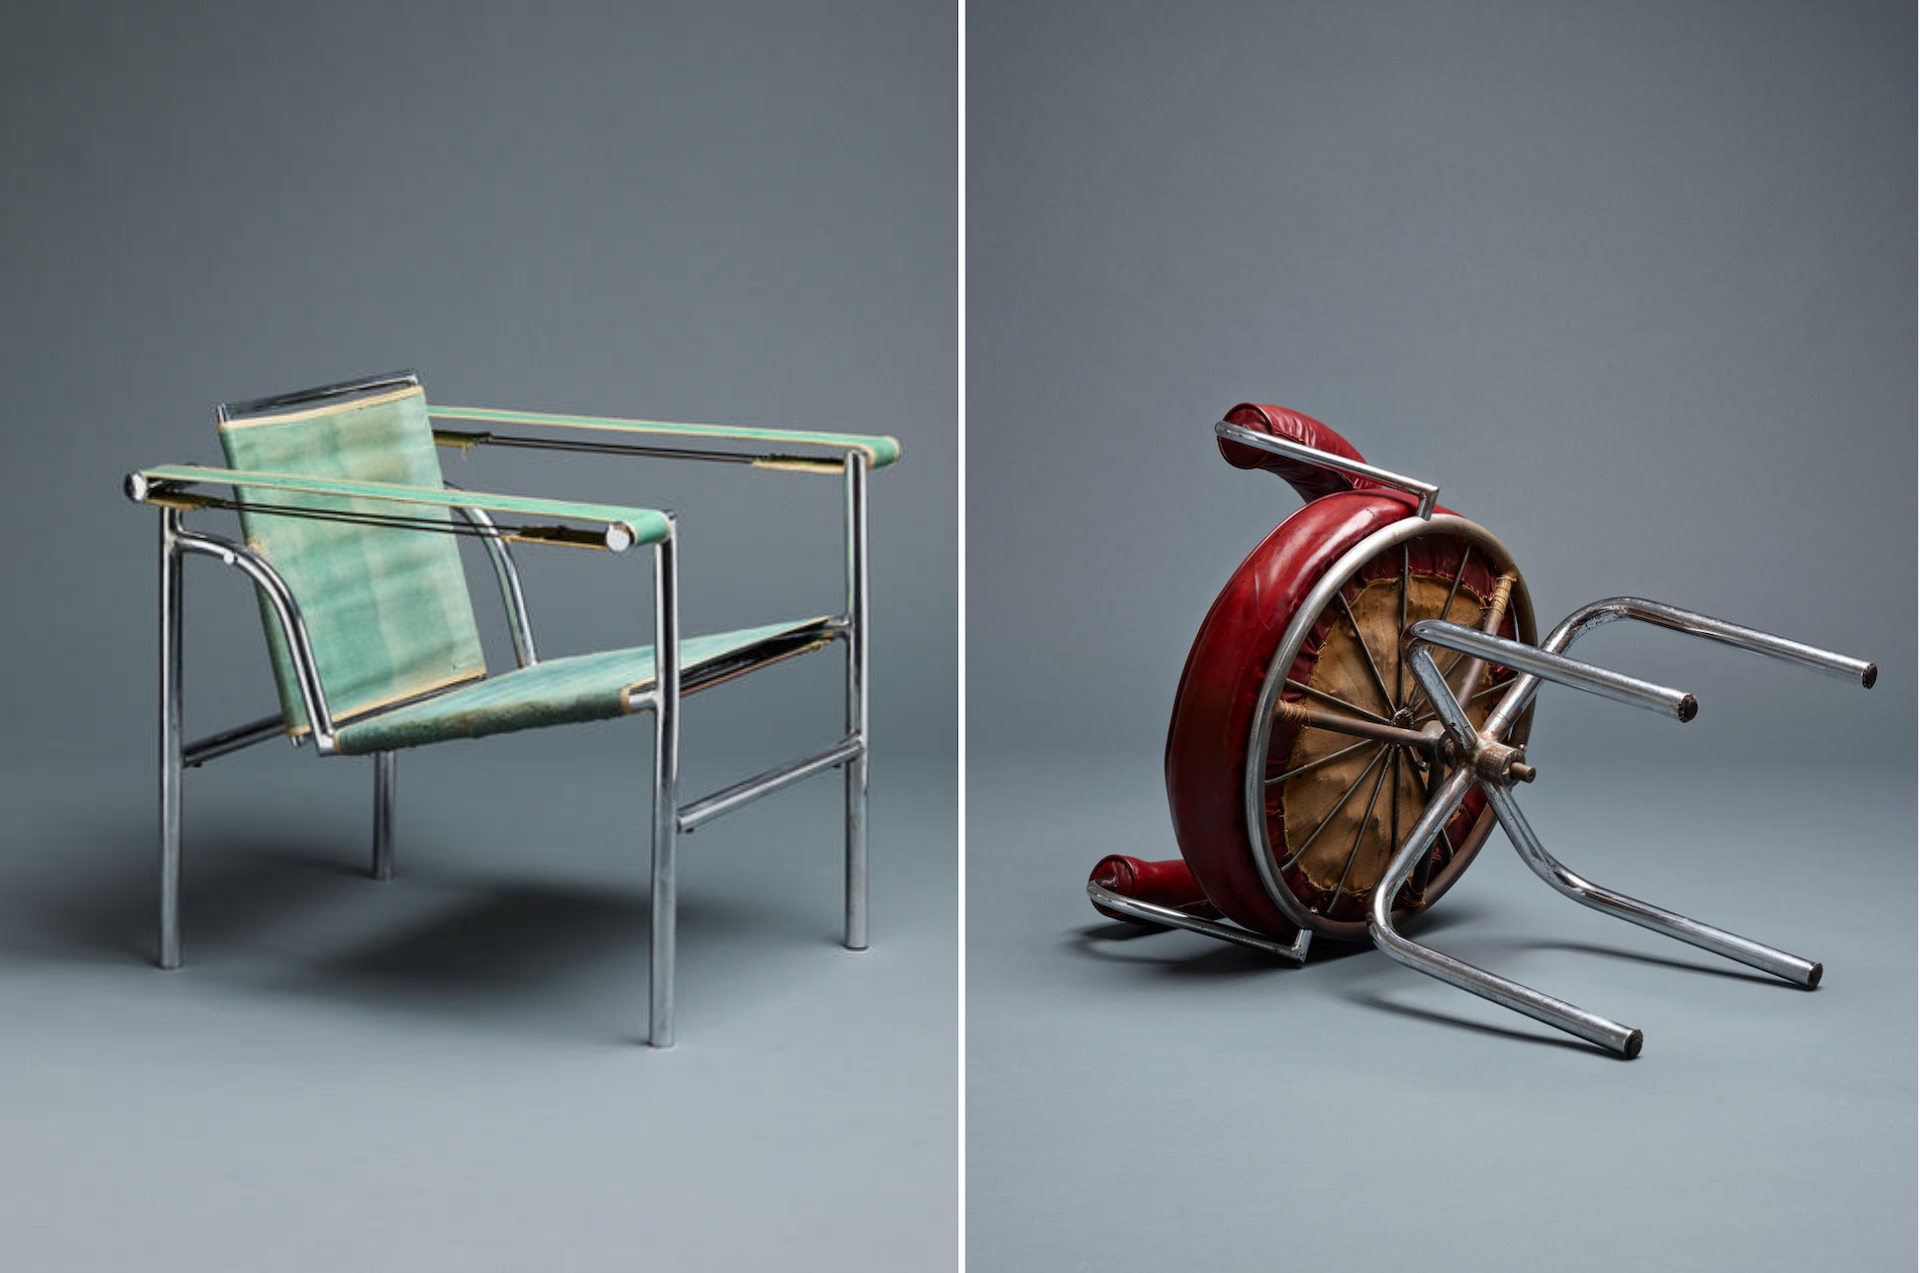 Armchair Siège à Dossier Basculant, 1929, and Swivel Chair Siège Pivotant, 1927, both by Le Corbusier, Charlotte Perriand, and Pierre Jeanneret. Photos © Galerie Ulrich Fiedler